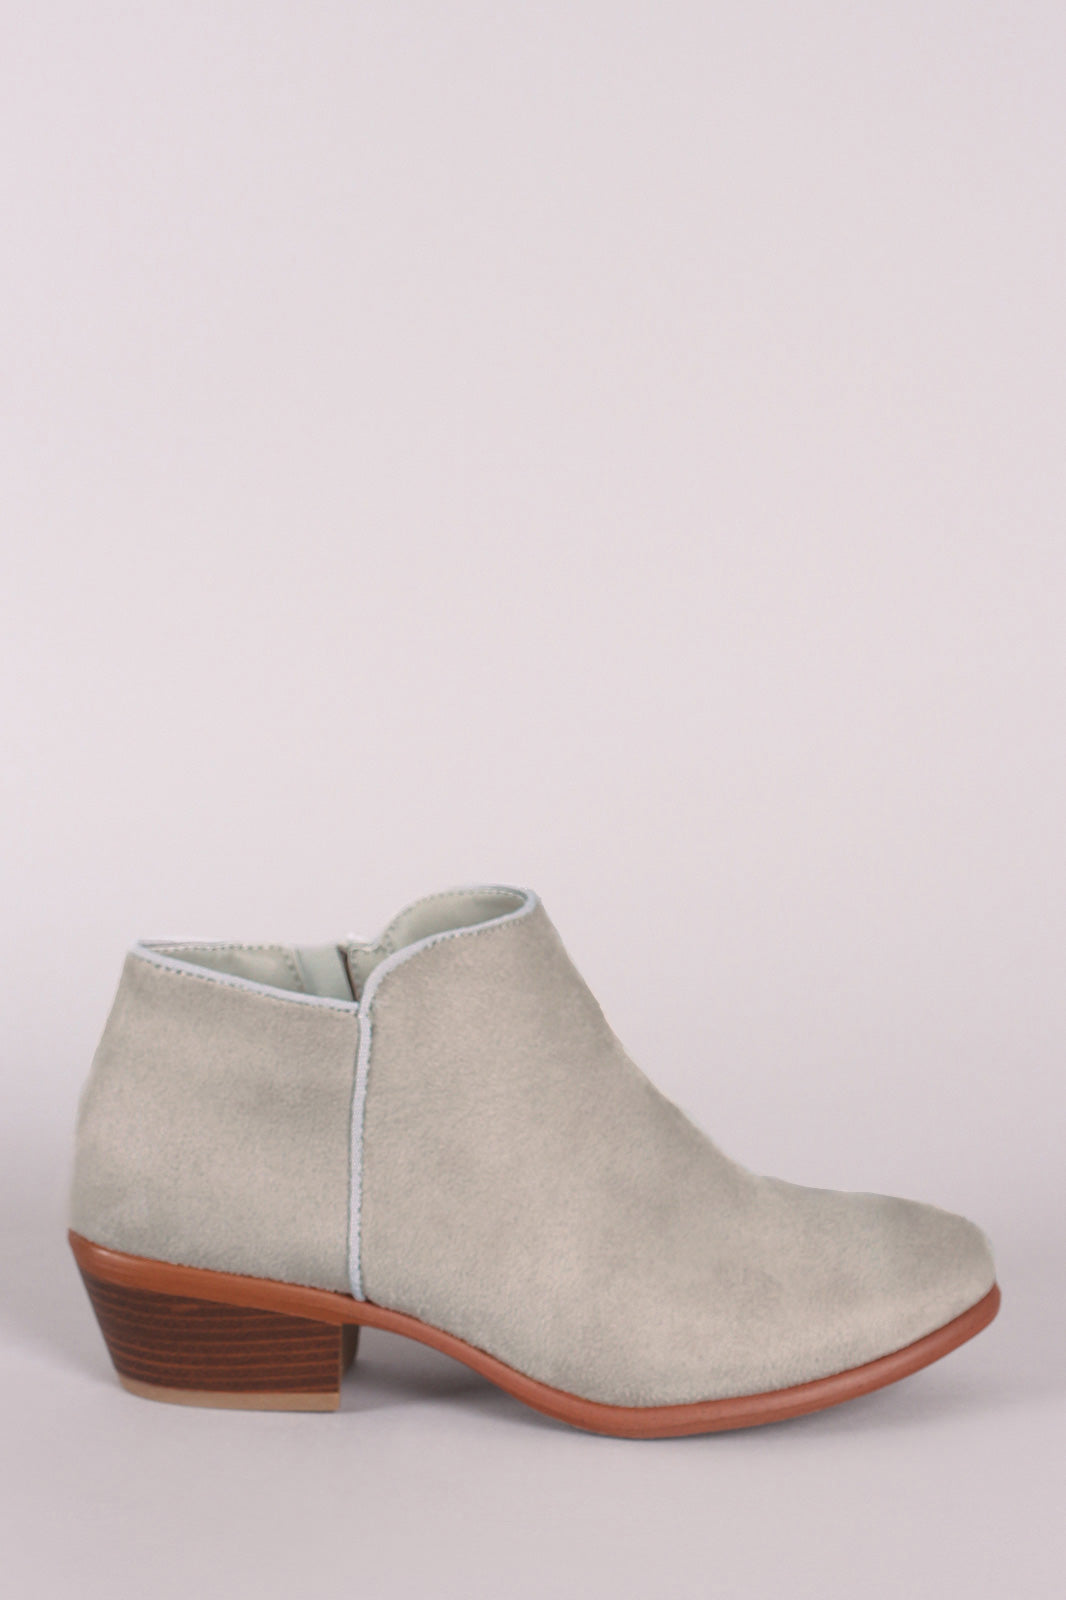 Wild Diva Lounge Suede Round Toe Ankle Booties